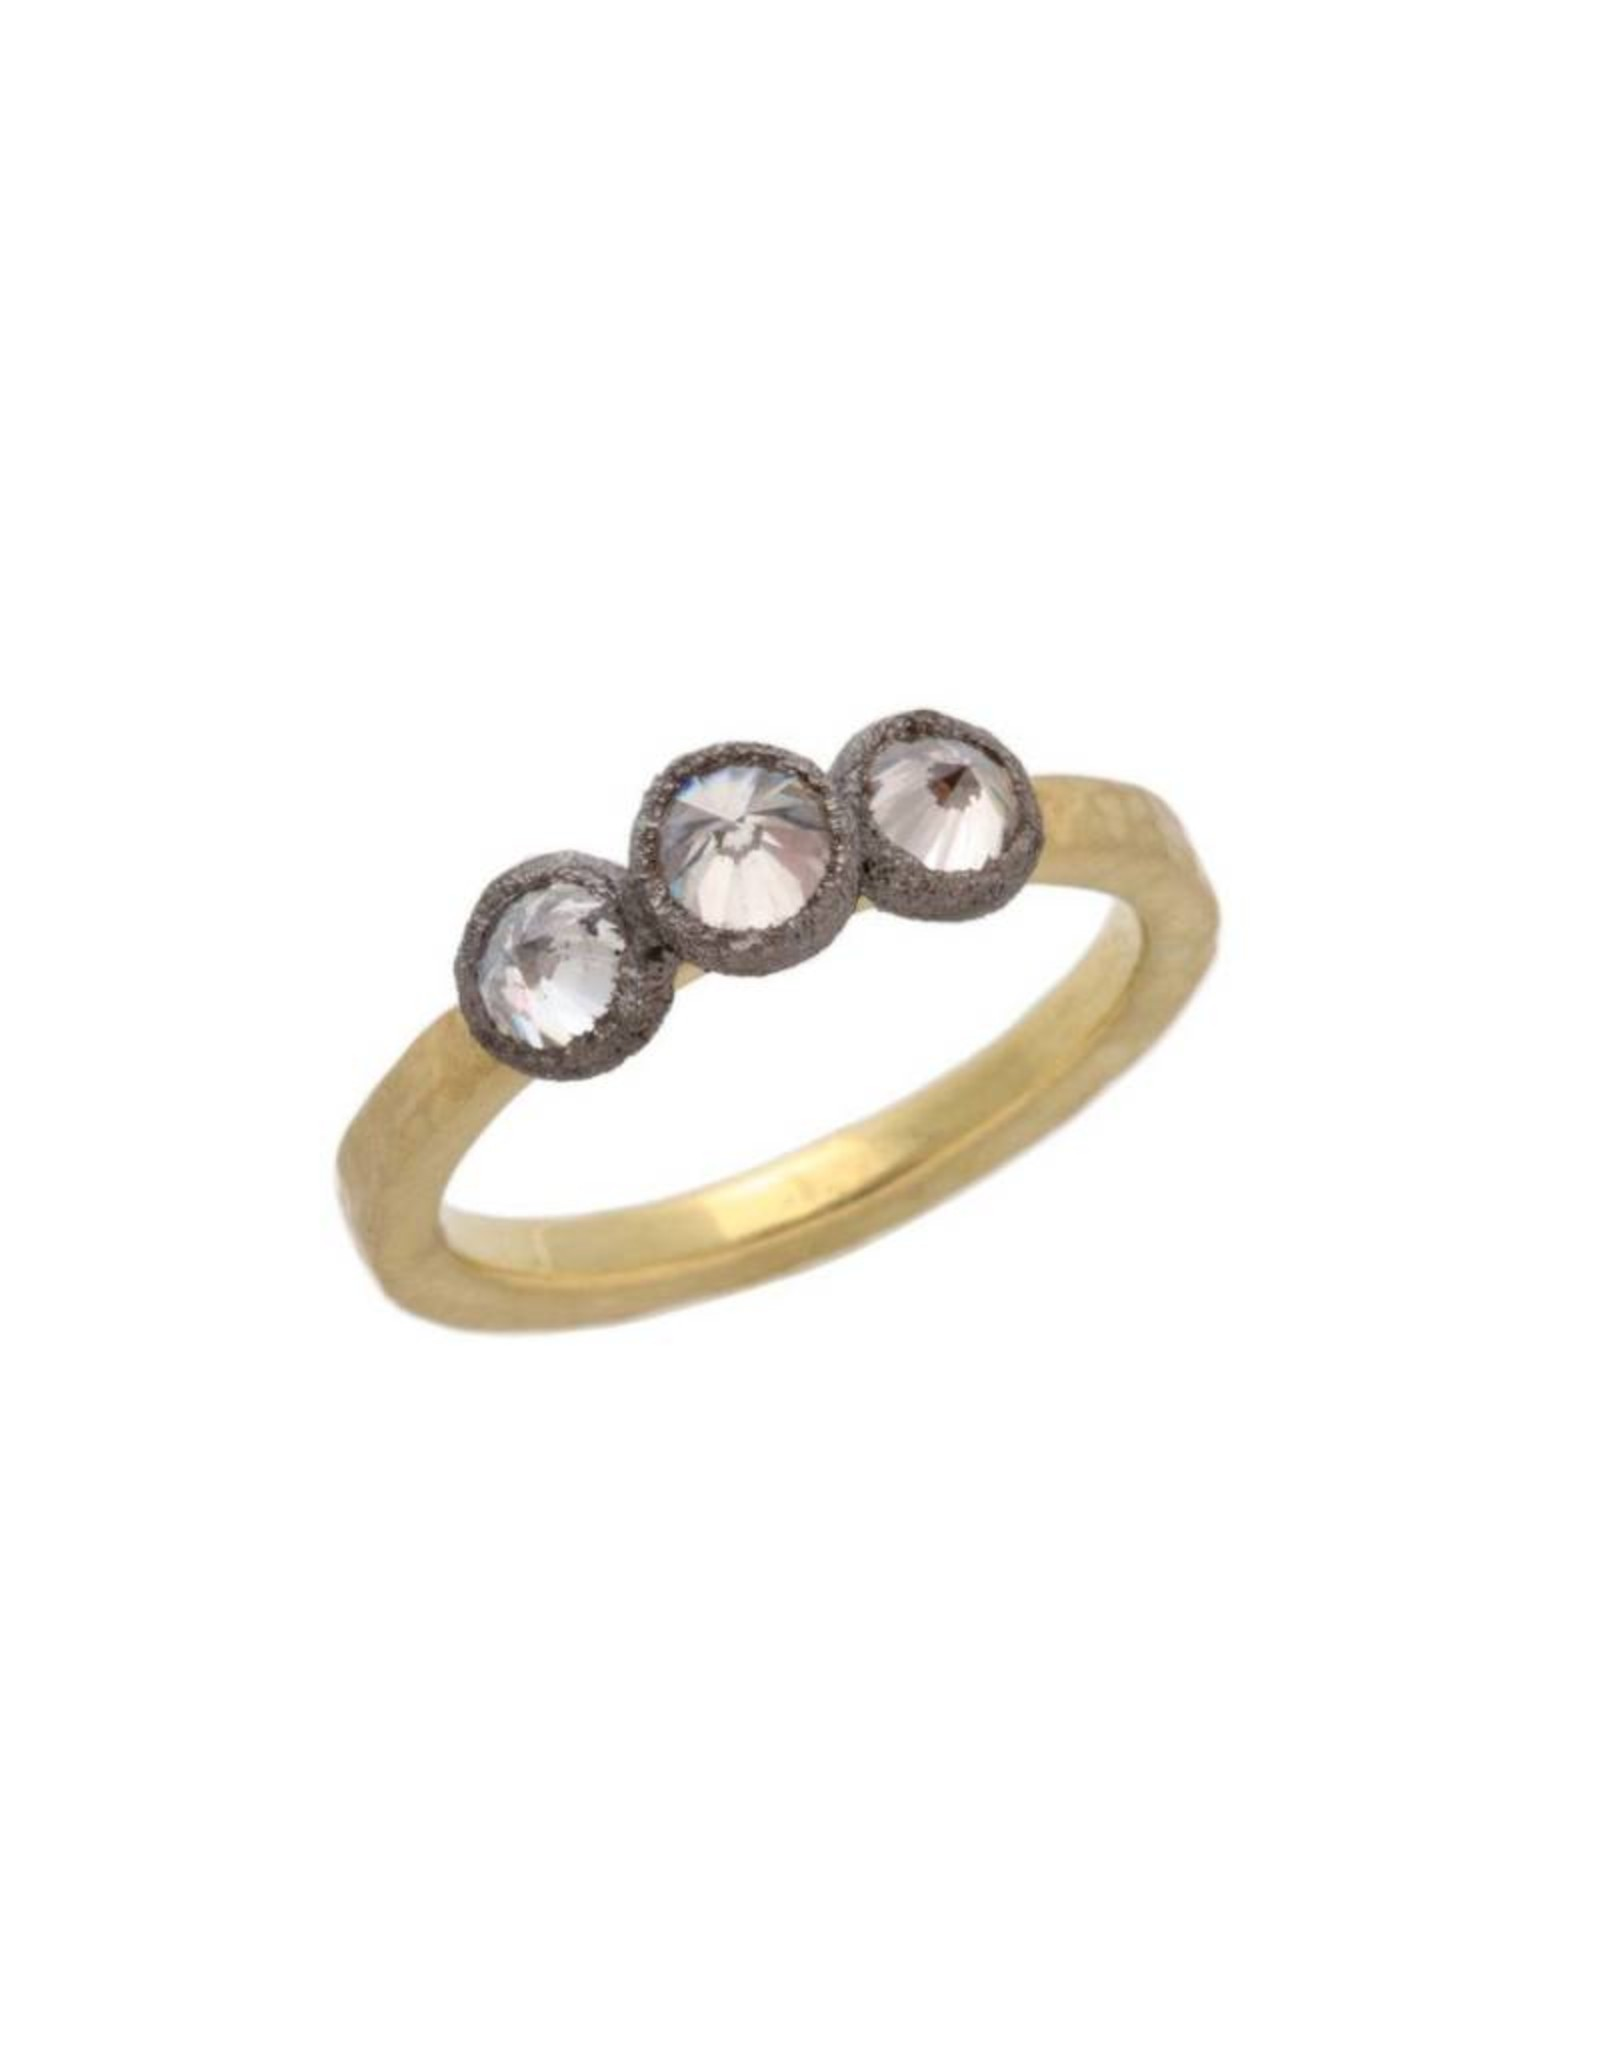 TAP by Todd Pownell Square Hammered Shank Ring with 3 Inverted Diamonds - 18K Yellow Gold